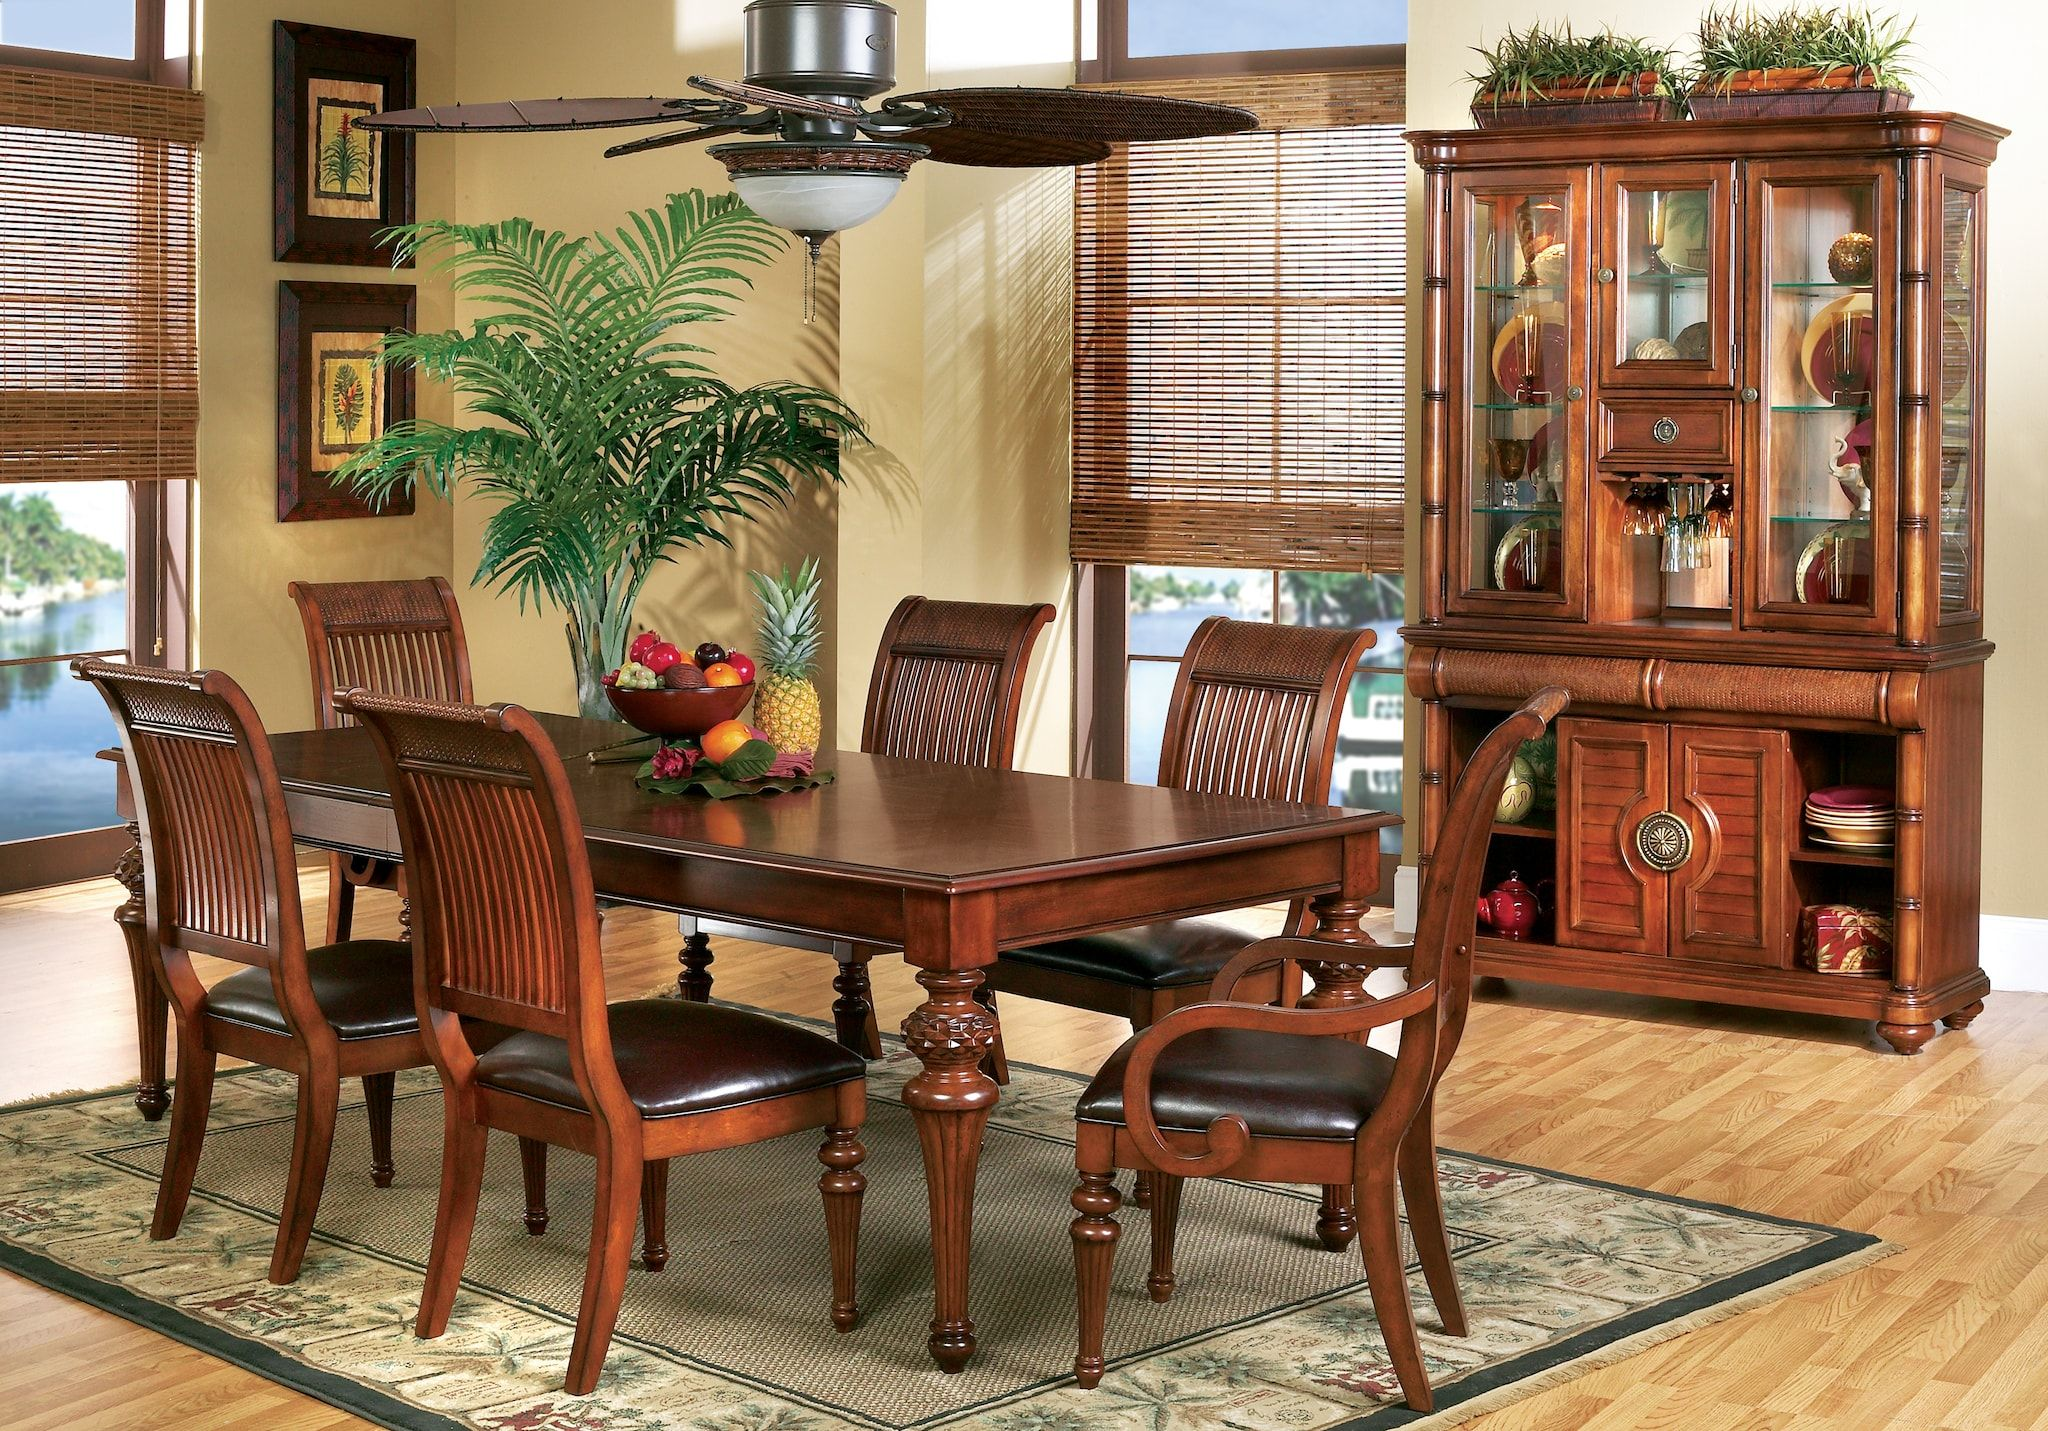 Cindy Crawford Dining Room Sets For Sale Dining Room Sets Rustic Dining Room Sets Affordable Dining Room Sets